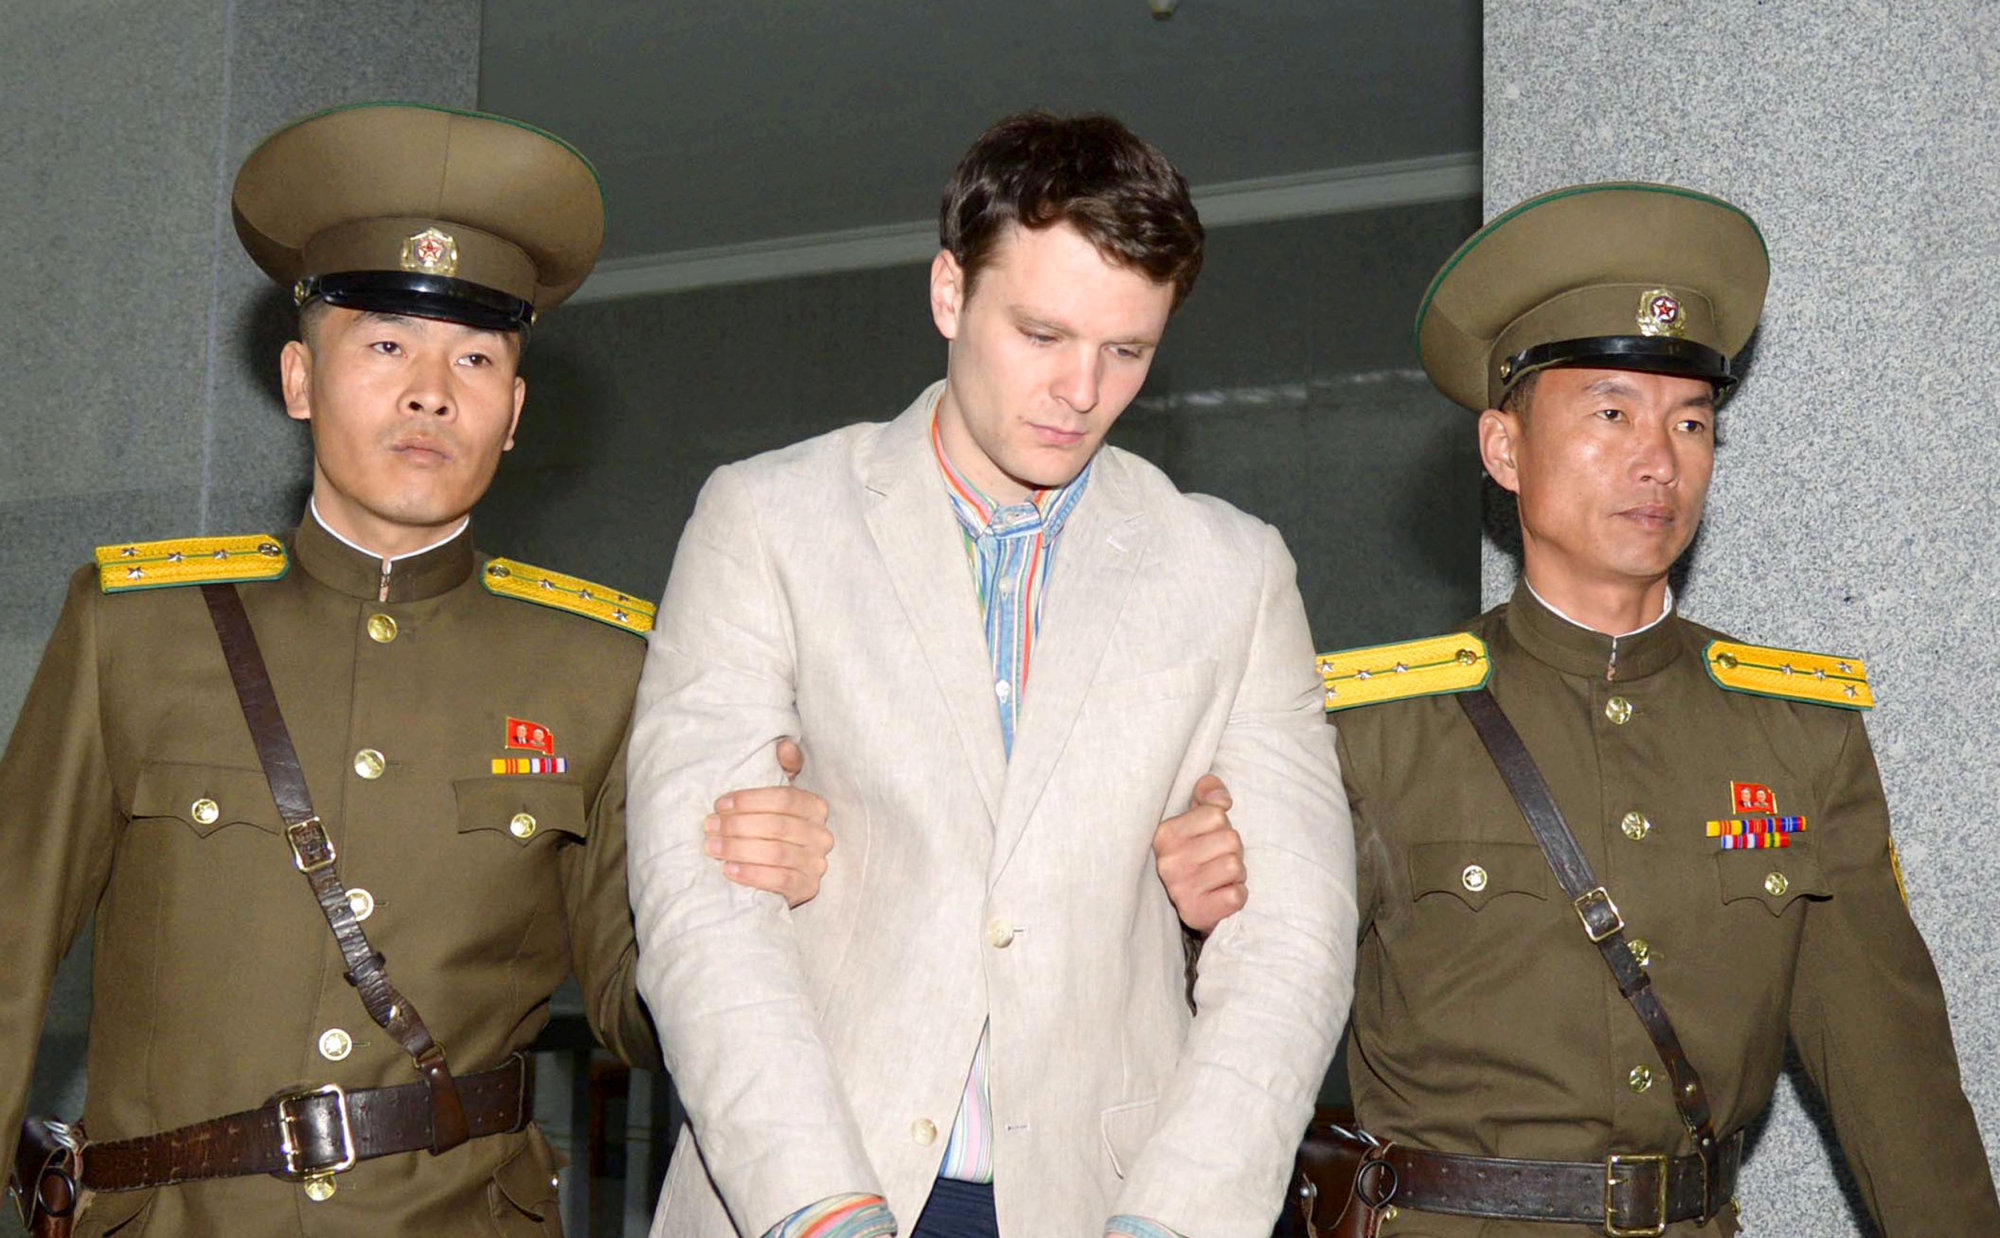 Otto Frederick Warmbier, a University of Virginia student who was detained in North Korea since early January, is taken to North Korea's top court in Pyongyang in this photo released by Kyodo on March 16, 2016. | KYODO / FILE PHOTO / VIA REUTERS